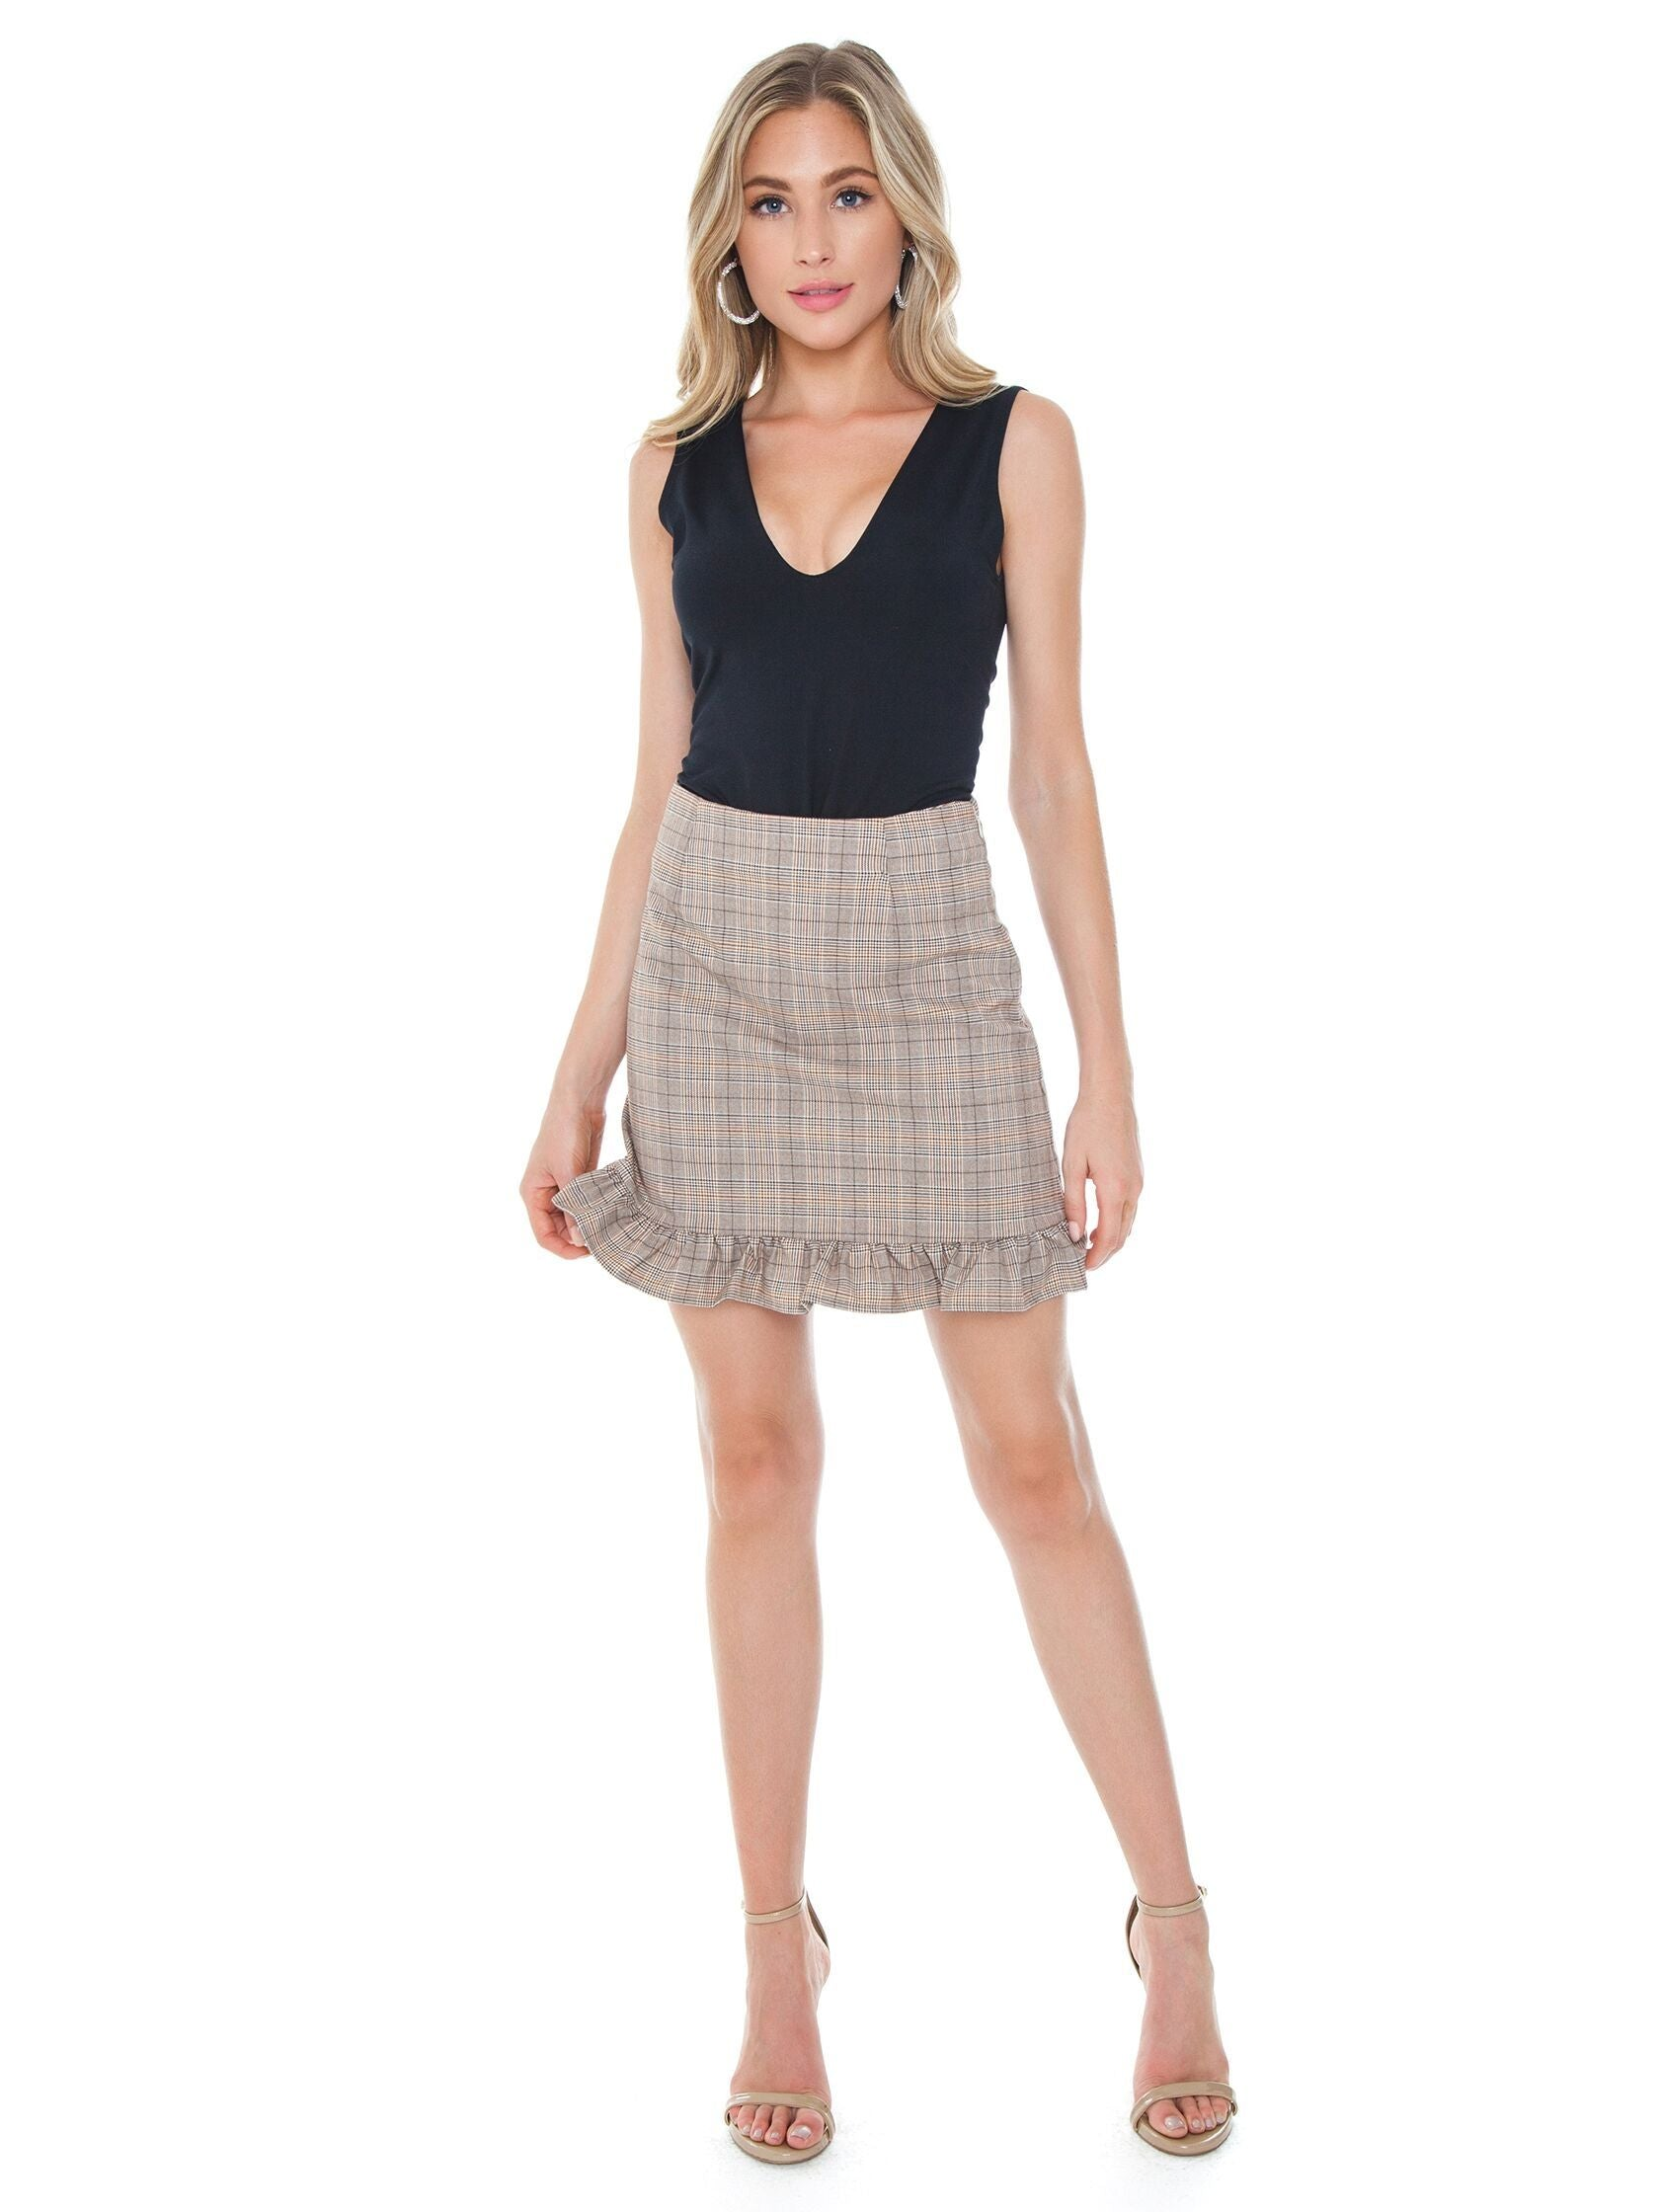 Girl wearing a skirt rental from Cupcakes and Cashmere called Matilda Skirt